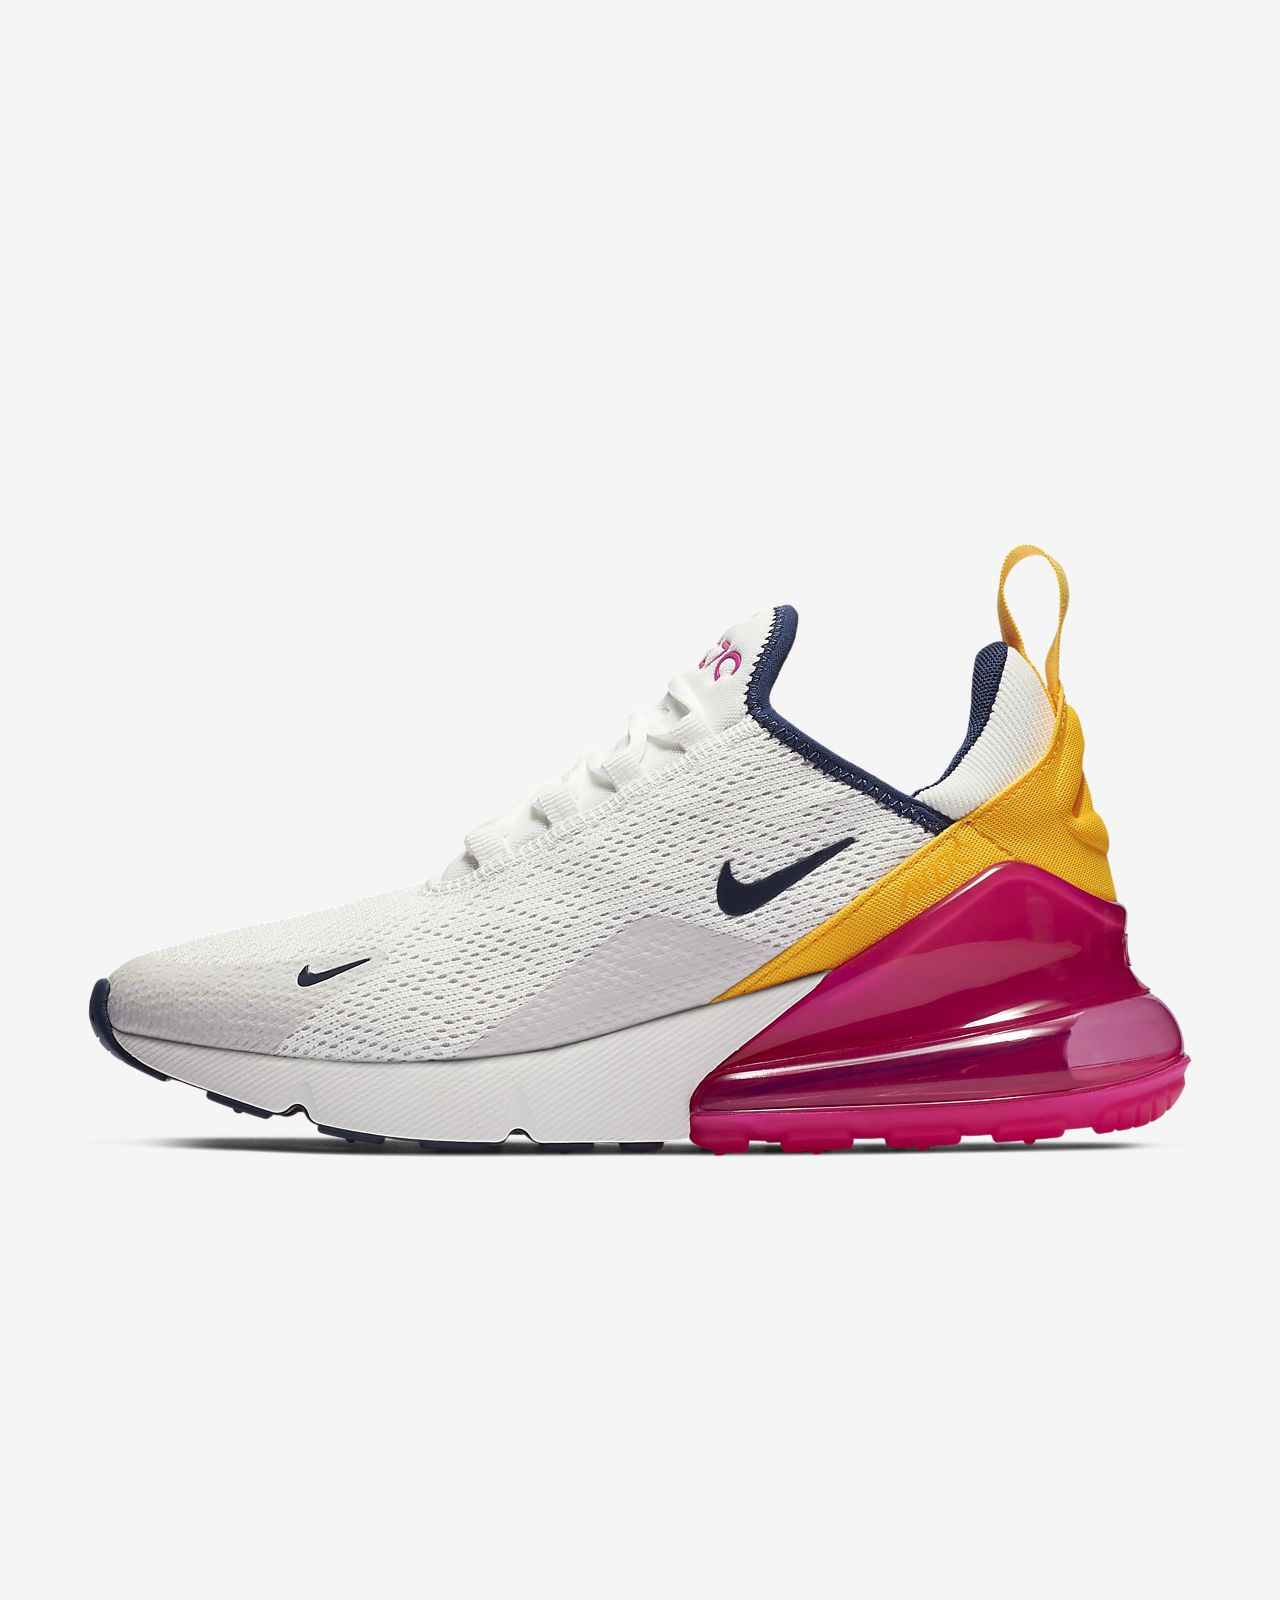 new style ee56c 53832 ... Nike Air Max 270 Premium Zapatillas - Mujer